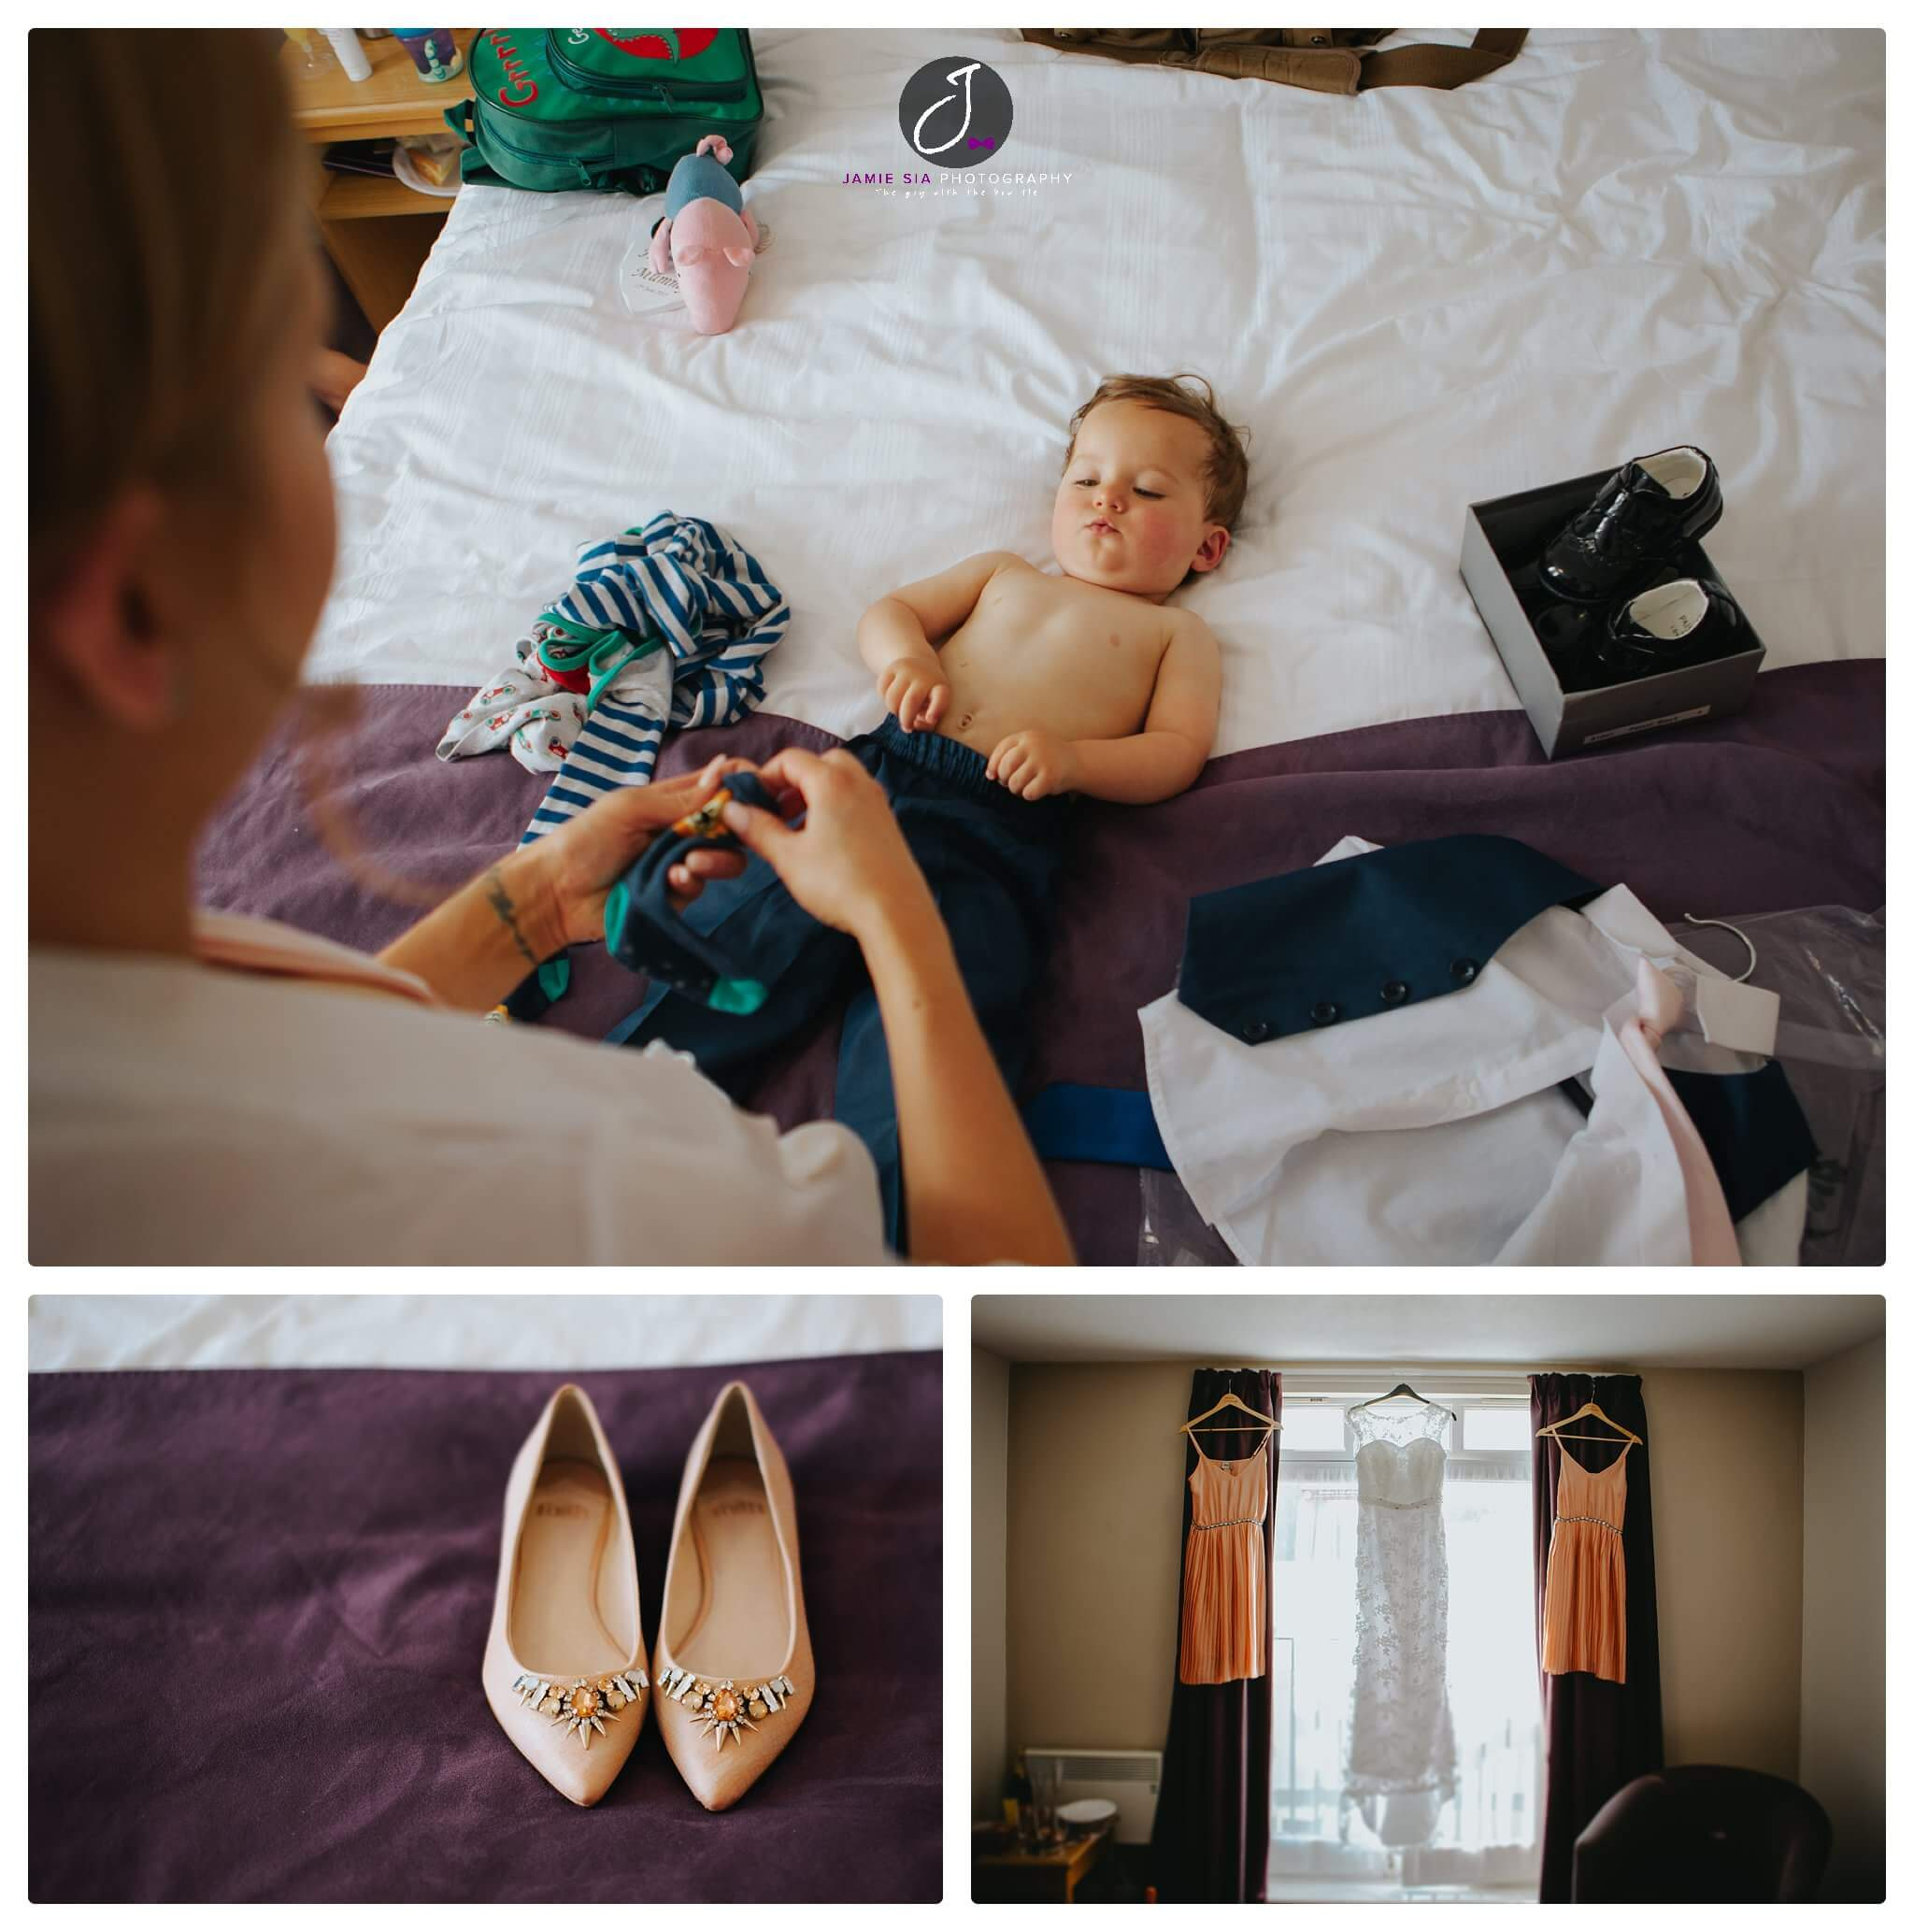 Bridal preparation for Yorkshire wedding, with cute little boy, bridal shoes, bridal dress